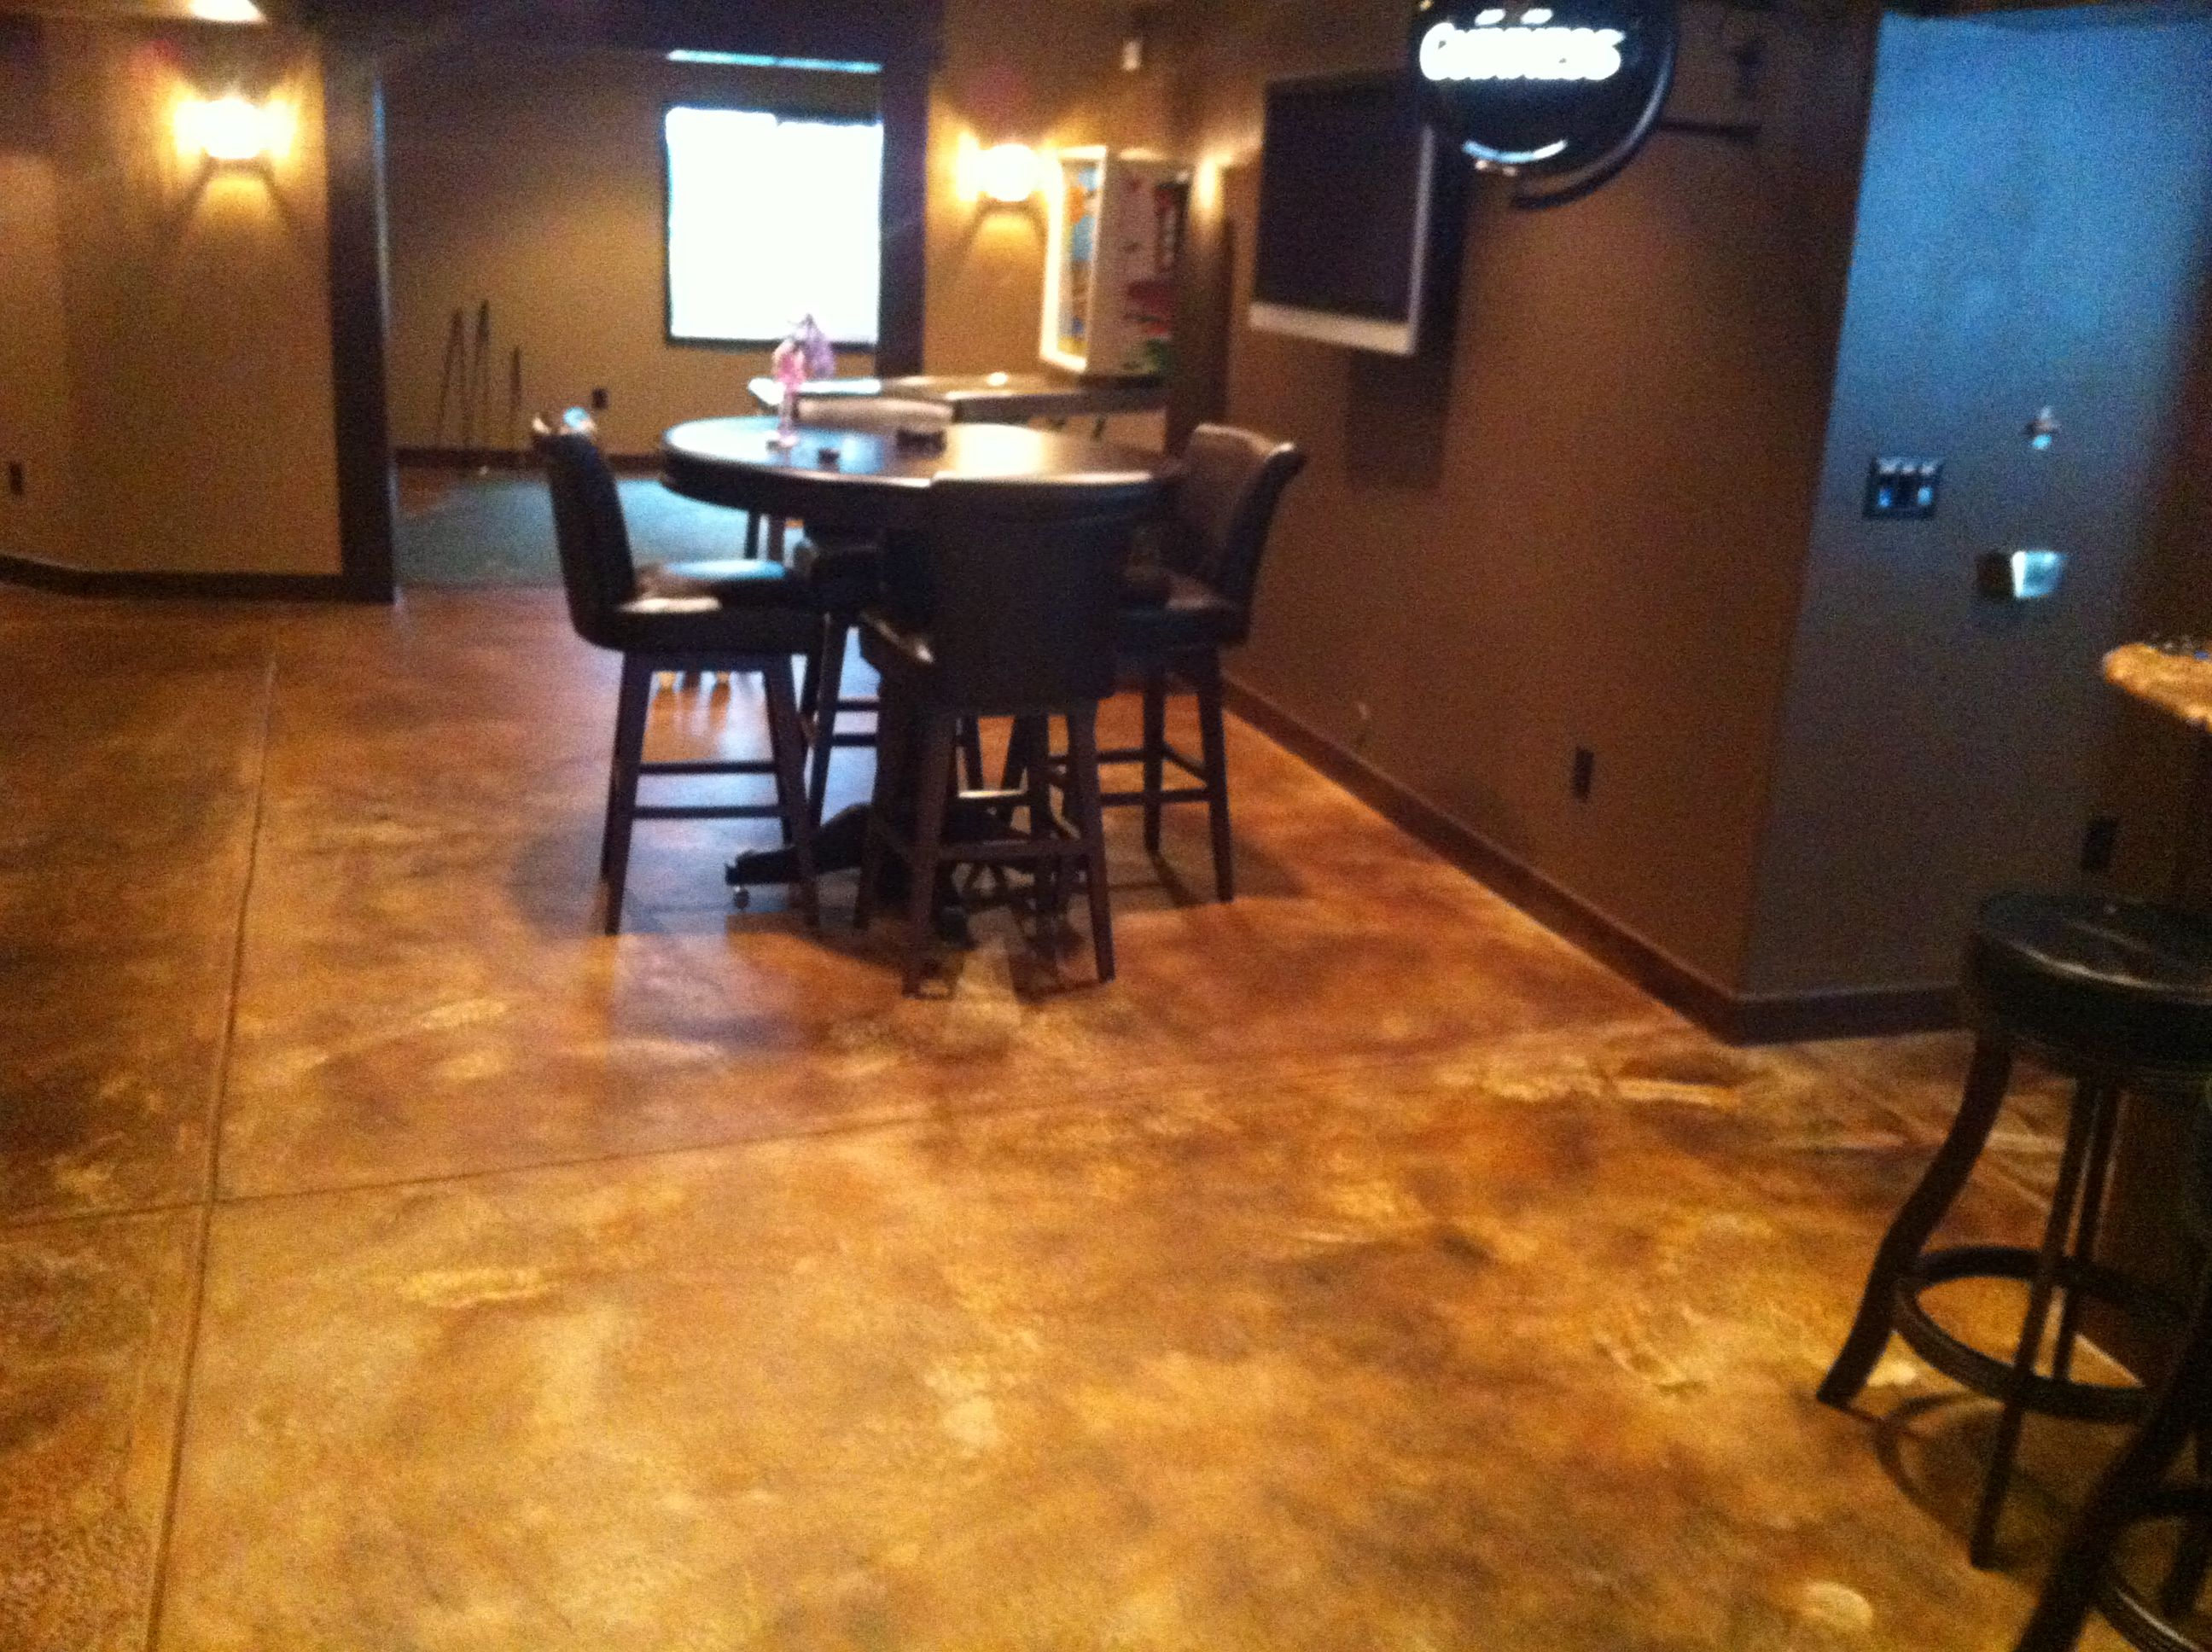 Epoxy garage floor paint ideas ideas grezu home interior - Painting Basement Floor For More Attractive Interior Amazing Wooden Material Of Furniture Design Plan Idea Flooring Unit Applied In Pool H